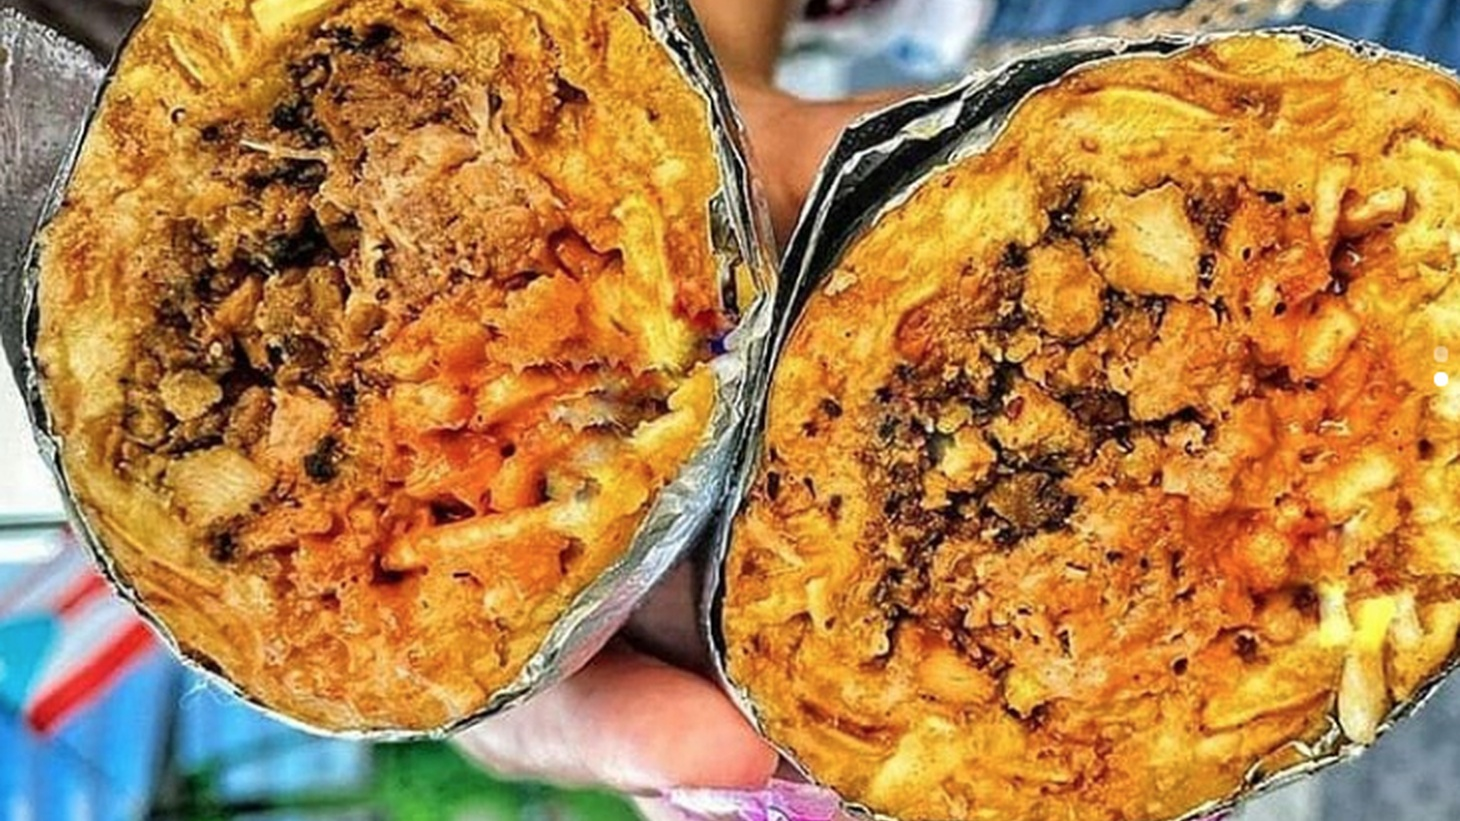 Omayra Dakis is optimistic about the holiday season and the celebrations surrounding Puerto Rico between Thanksgiving and the end of January. Dakis recommends the popular mofongo with green plantains, pork rinds, and roast pork.